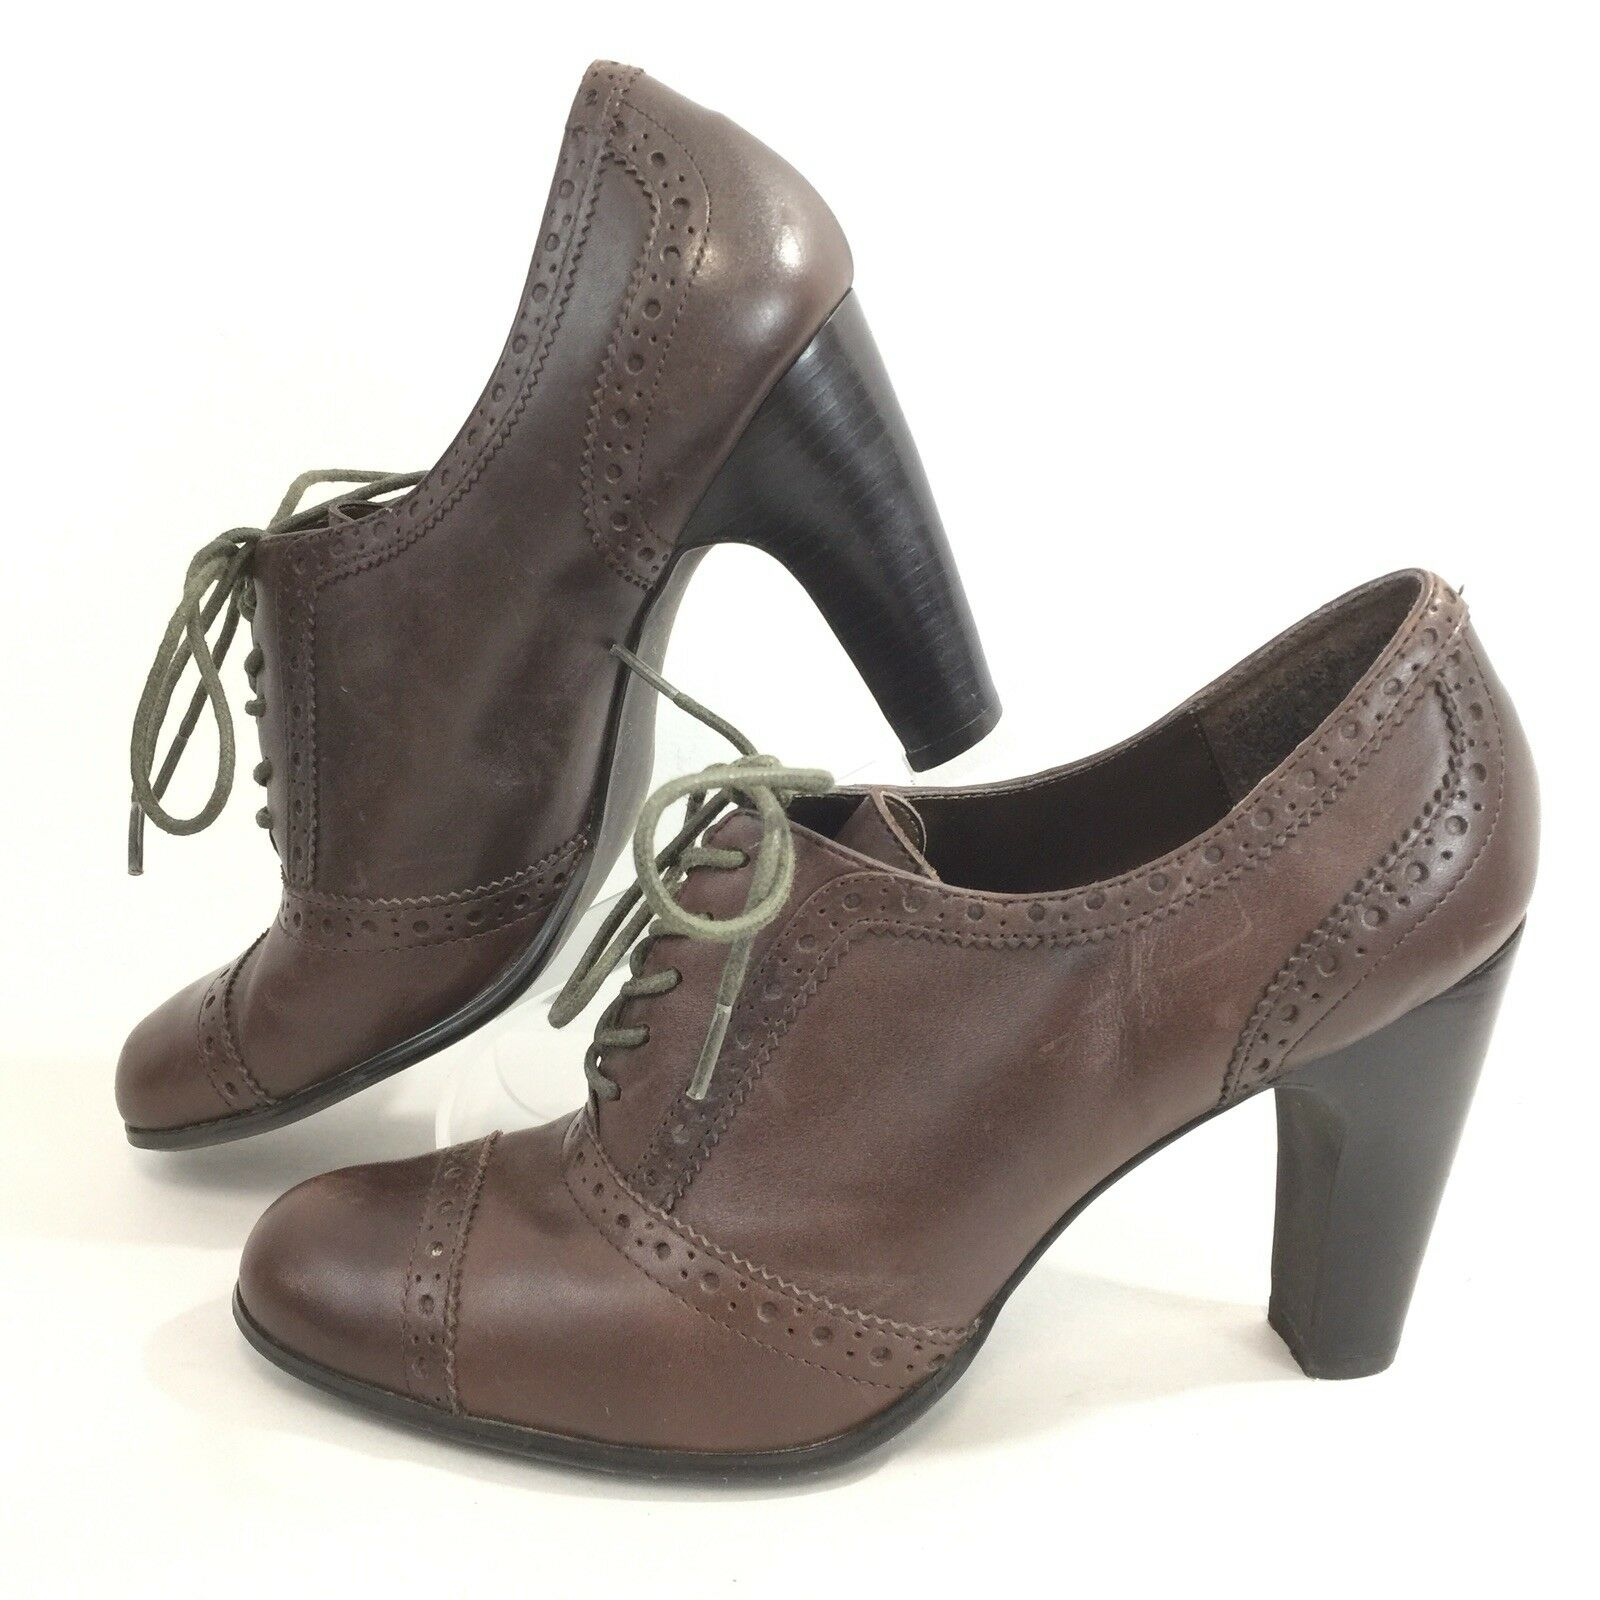 Franco Fortini Womens Sz 7.5 M Cap Toe Lace Up Heels Brown Leather Shooties 7.5M